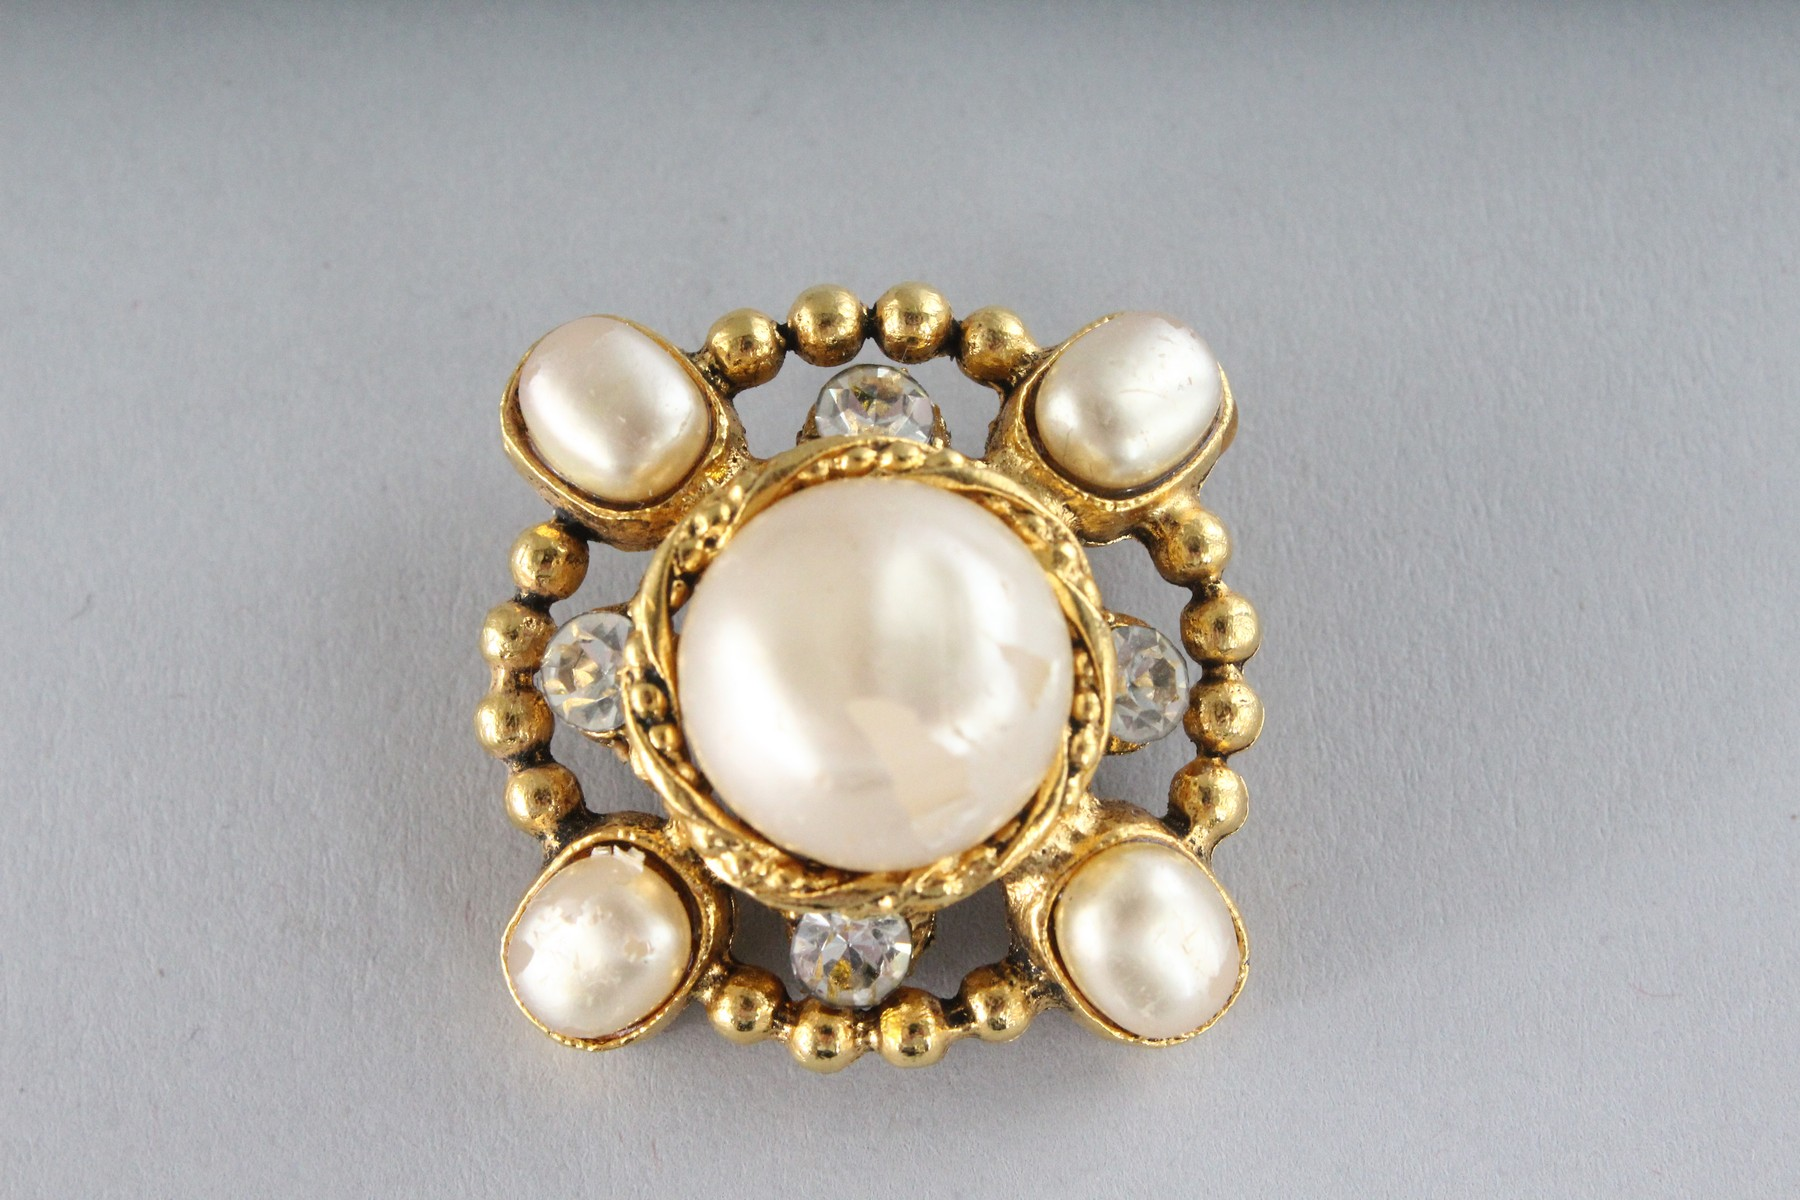 A GOOD PAIR OF CHANEL PEARL EAR CLIPS. - Image 3 of 4